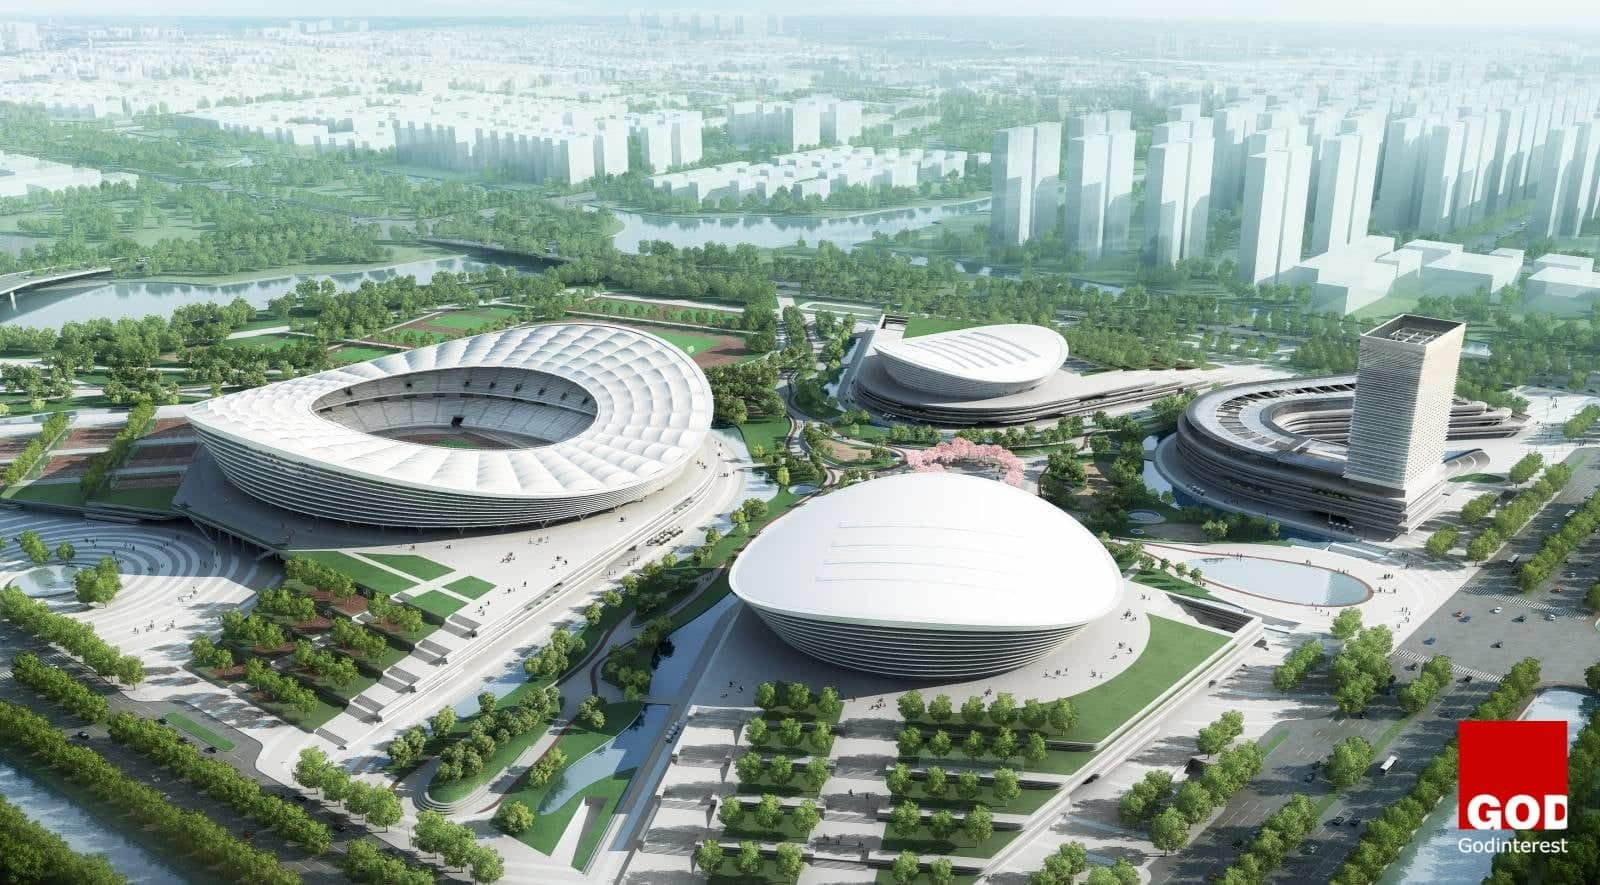 Construction Begins on Sip Sports Center in Suzhou